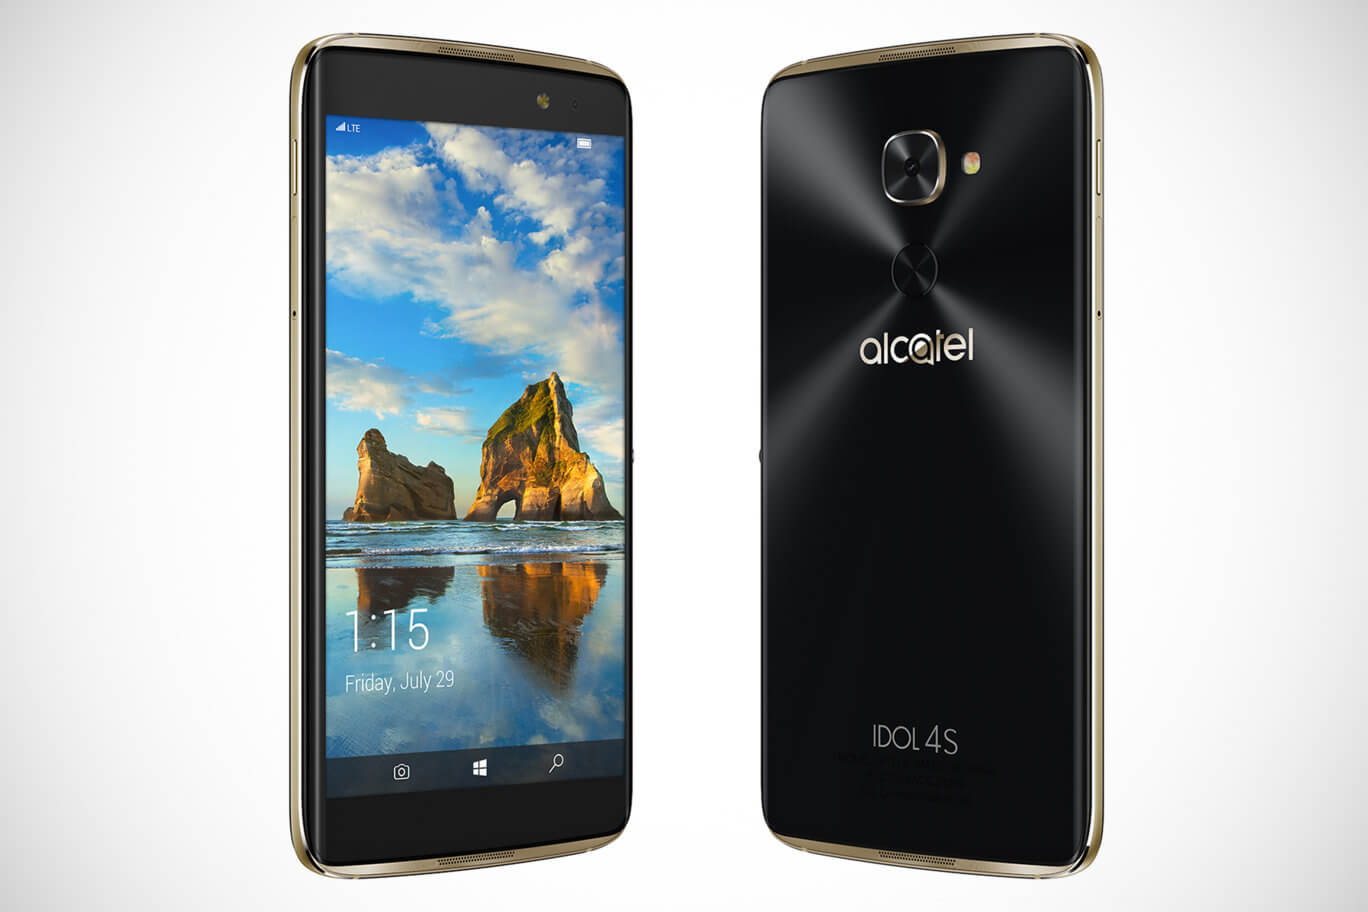 Alcatel Idol 4S Android Smartphone